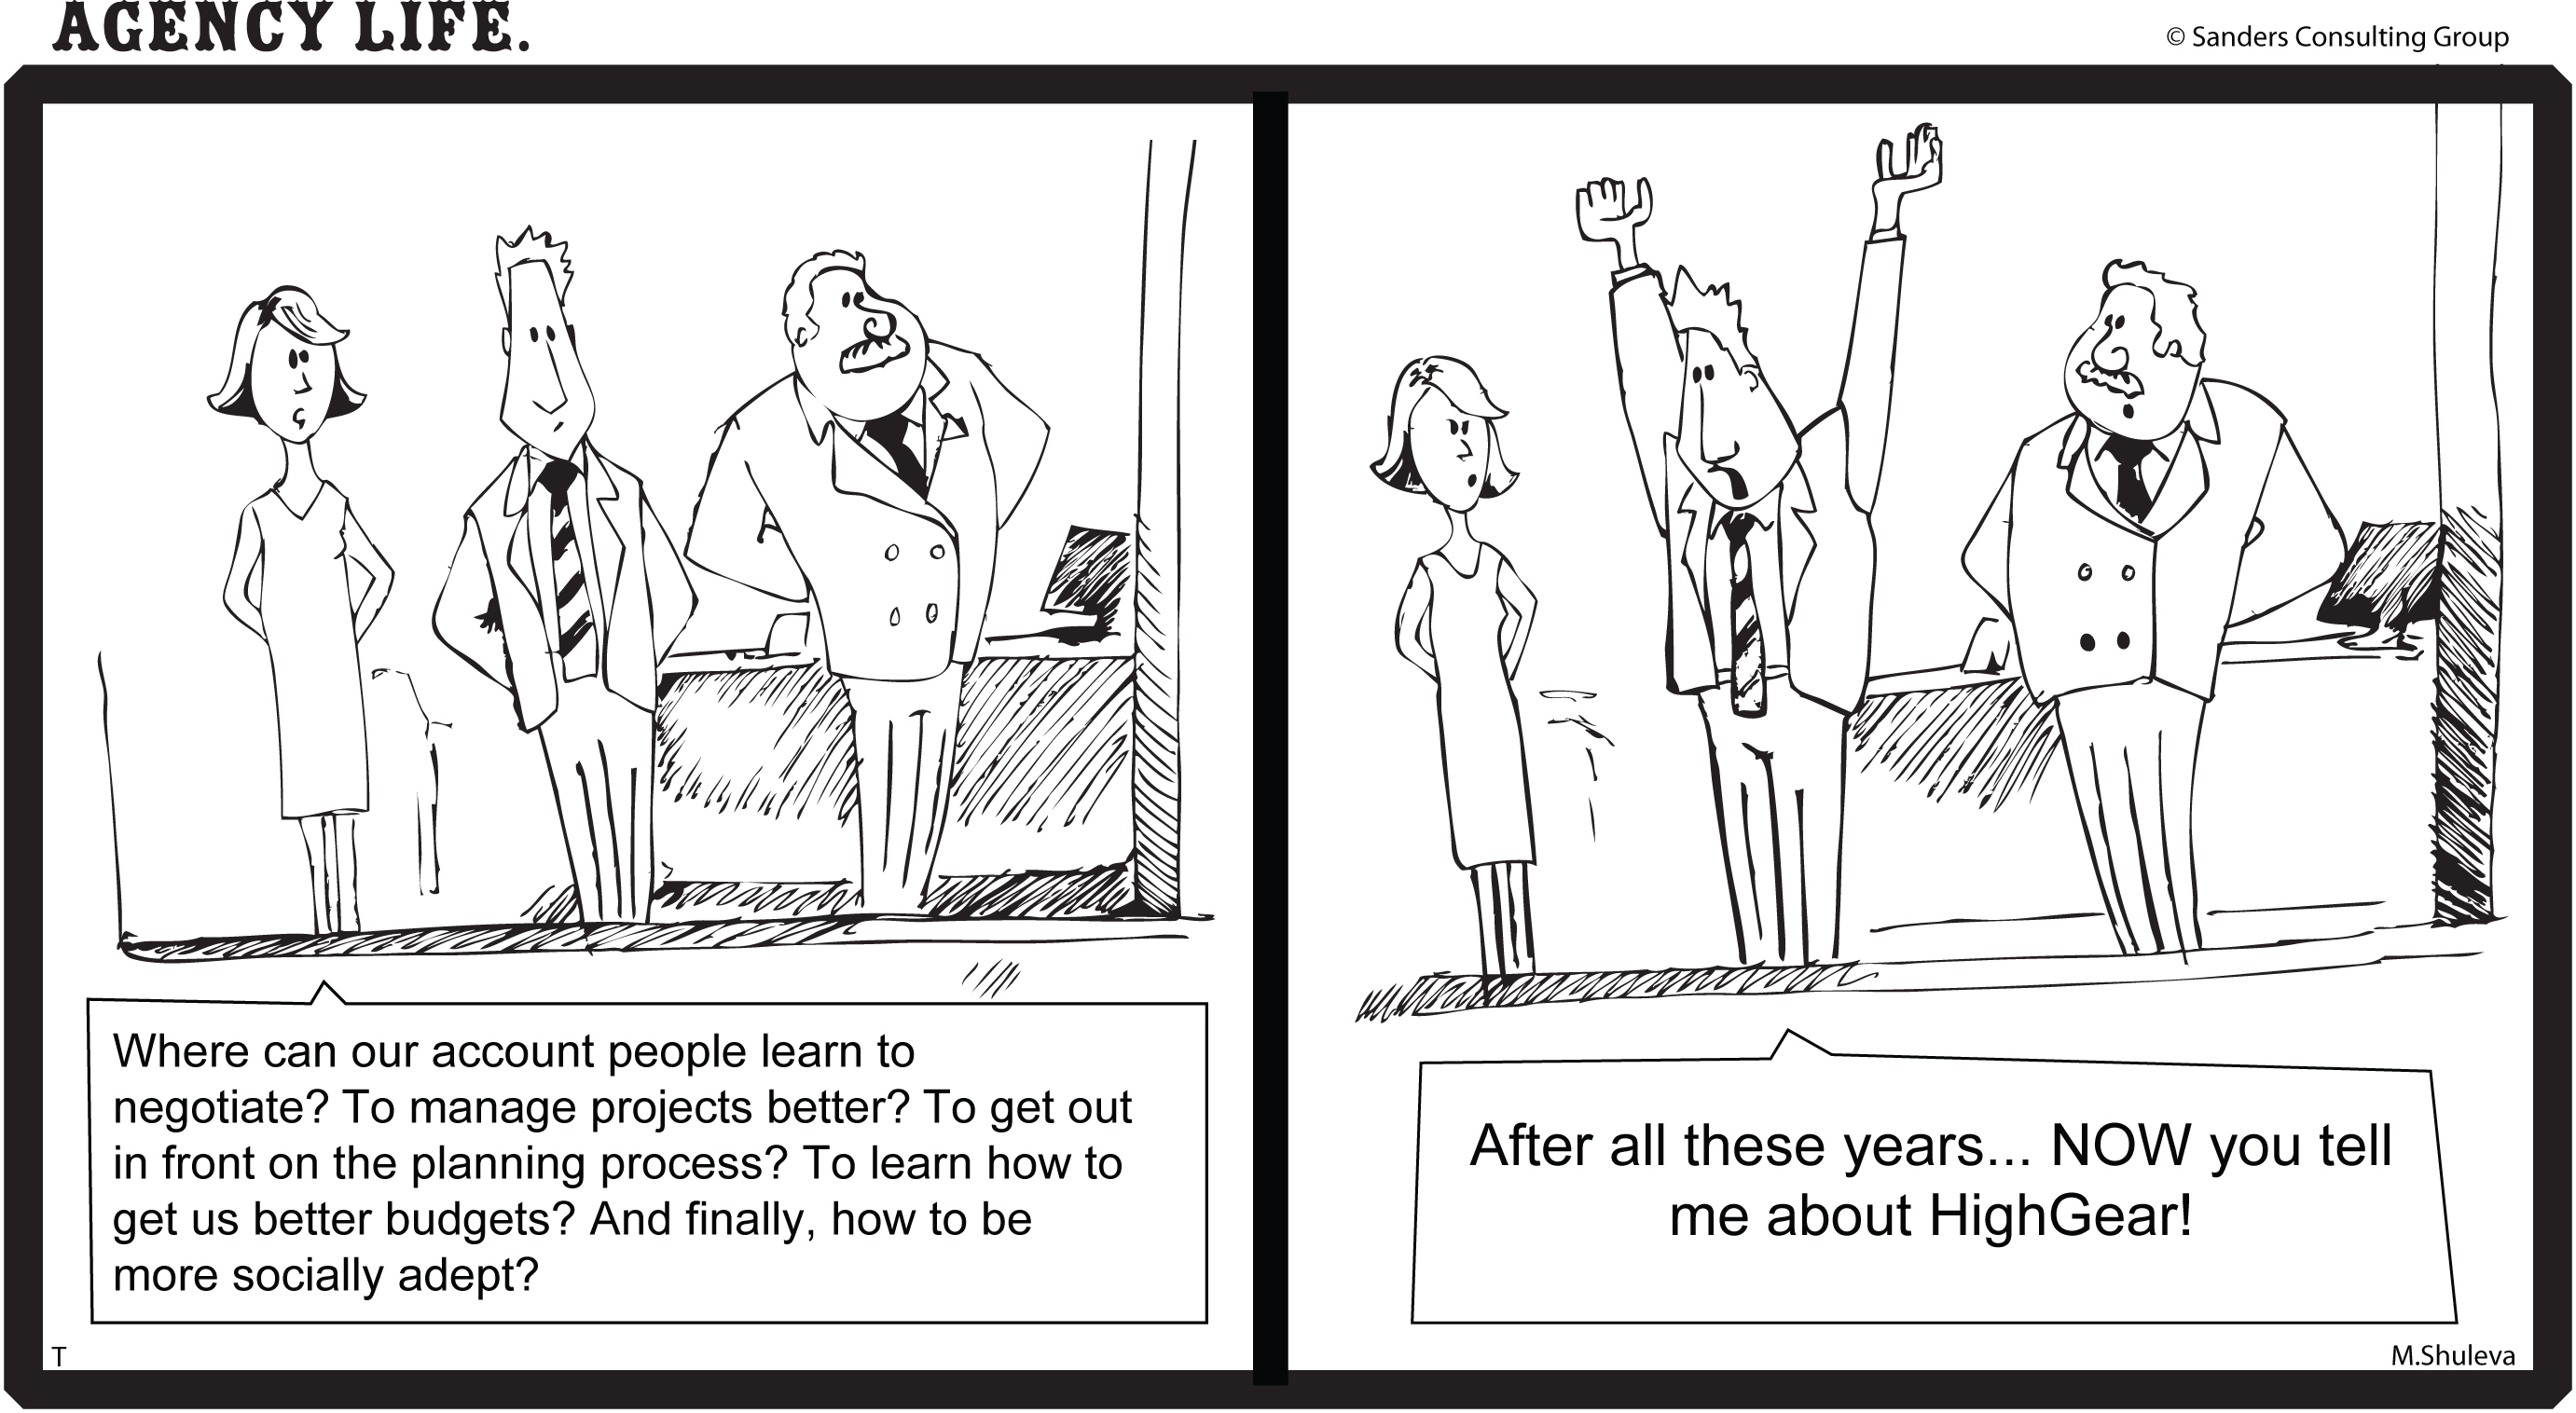 Transform your team. Grow your agency. Retain more clients.